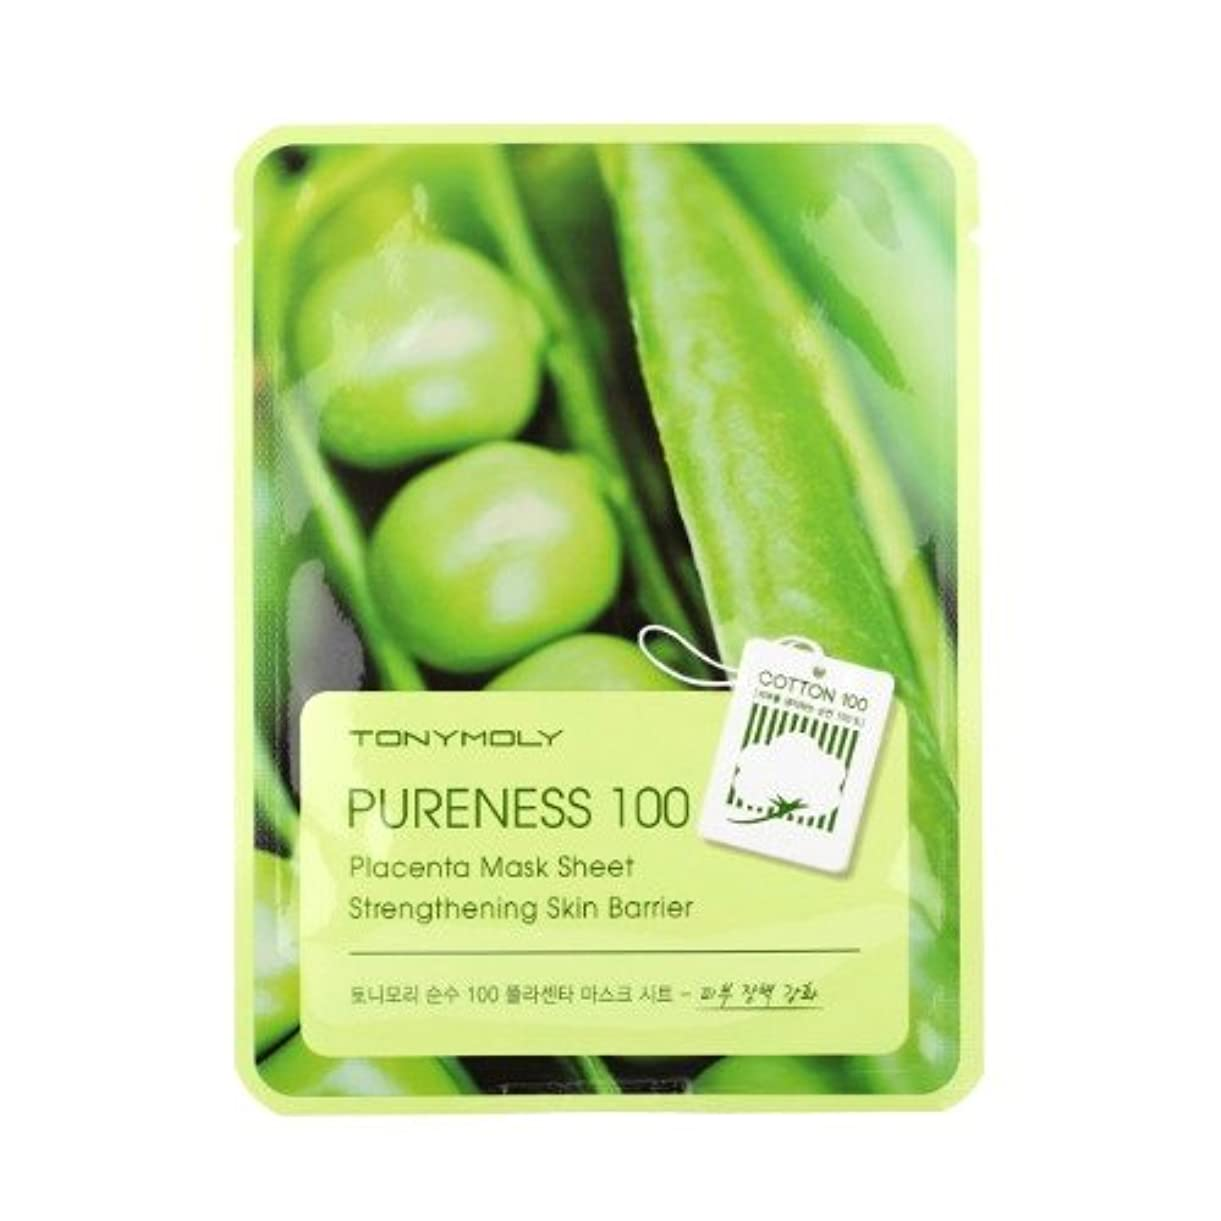 スイング日付付き顕著(3 Pack) TONYMOLY Pureness 100 Placenta Mask Sheet Strengthening Skin Barrier (並行輸入品)